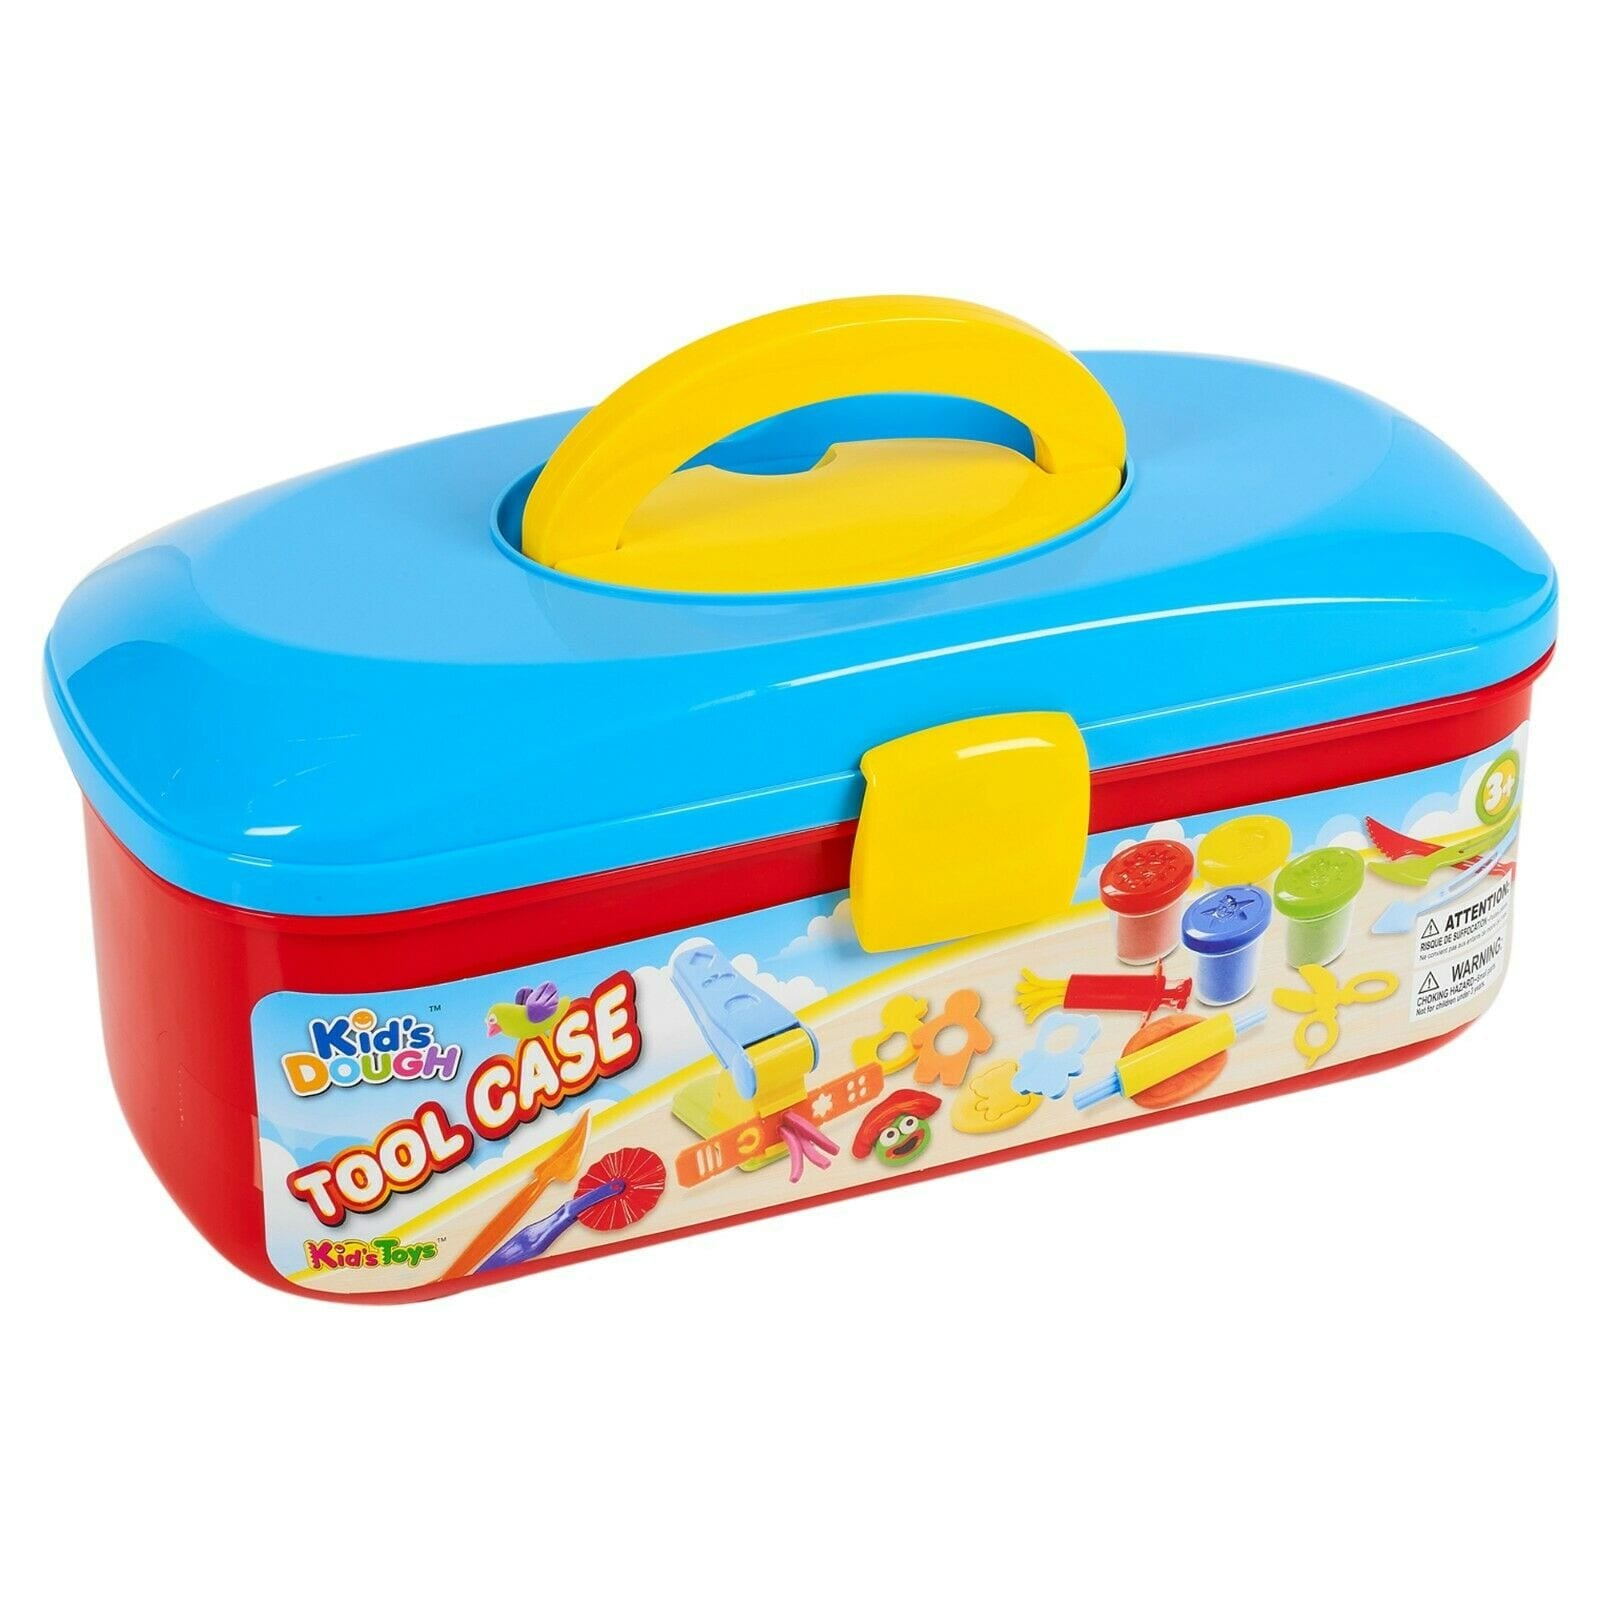 Kid's Dough Tool Case Play Dough And Accessory Playset